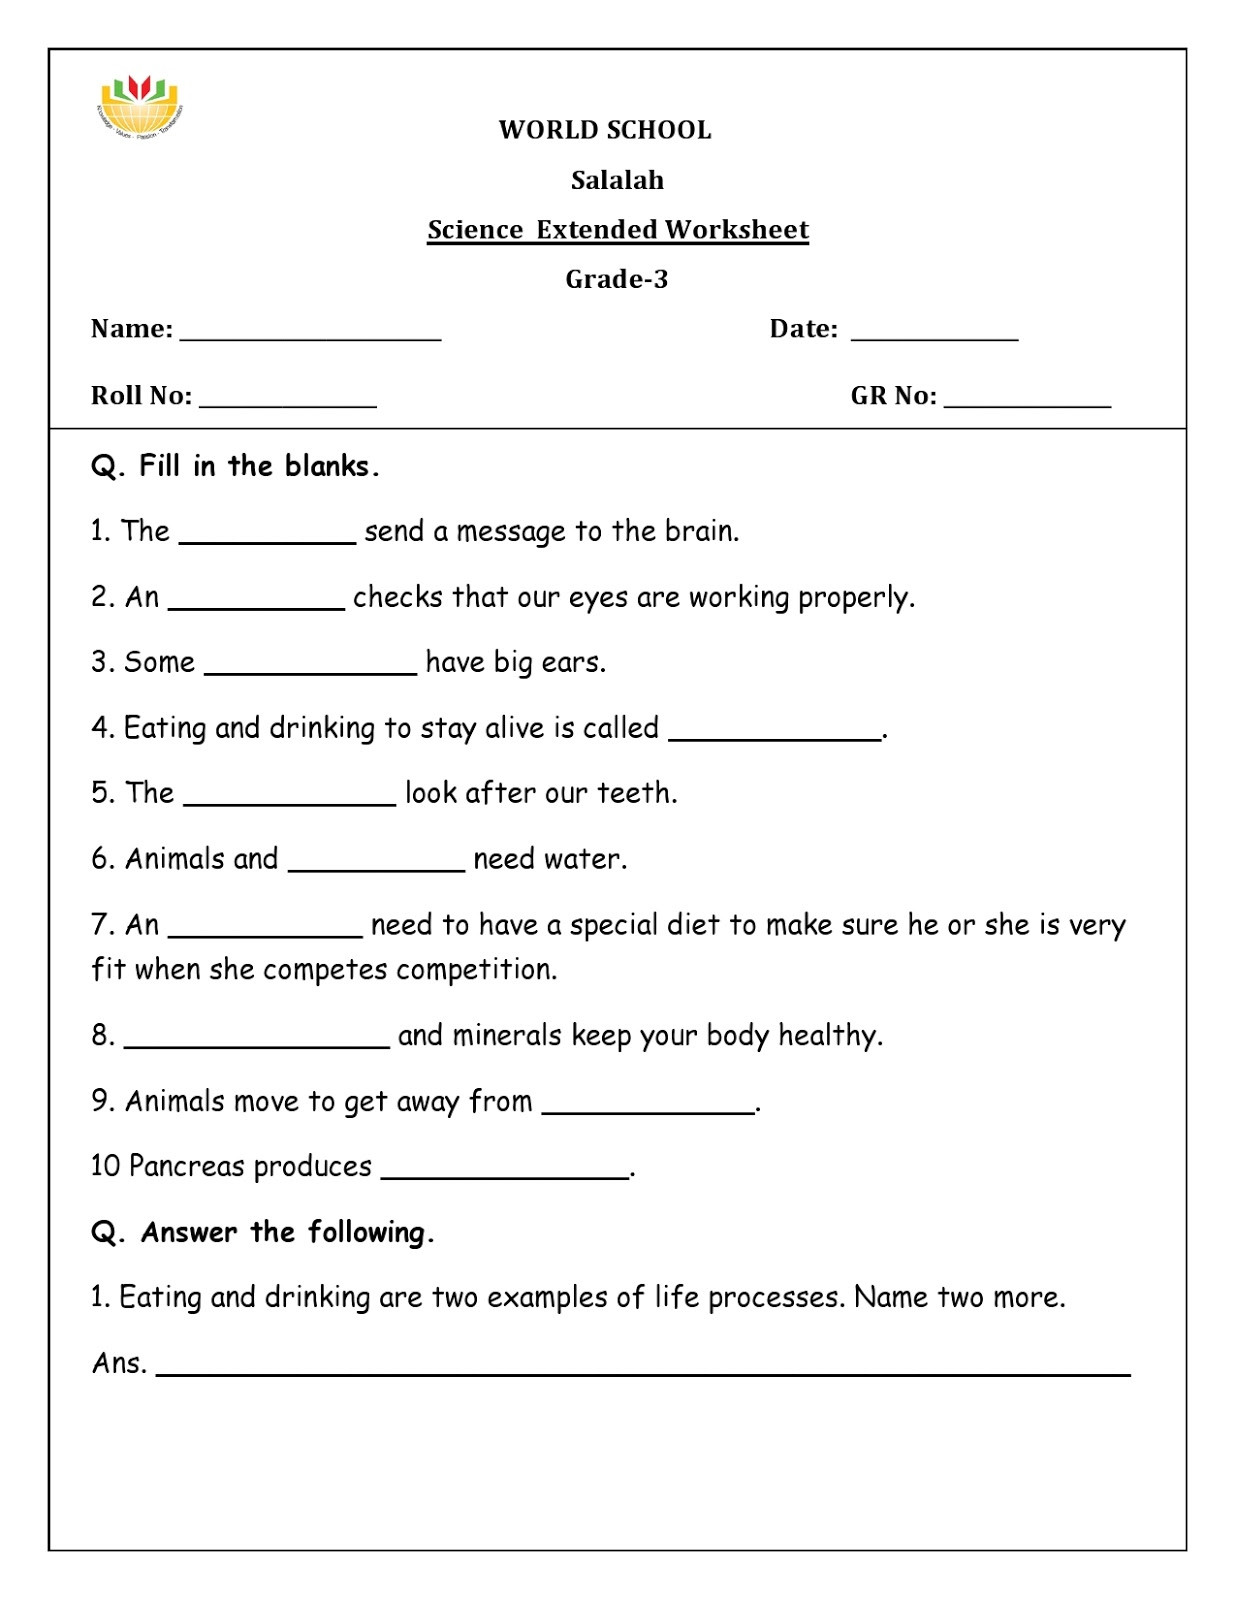 Science Fusion Grade 4 Worksheets Beginning Decimals Worksheets Consonant sounds Worksheets